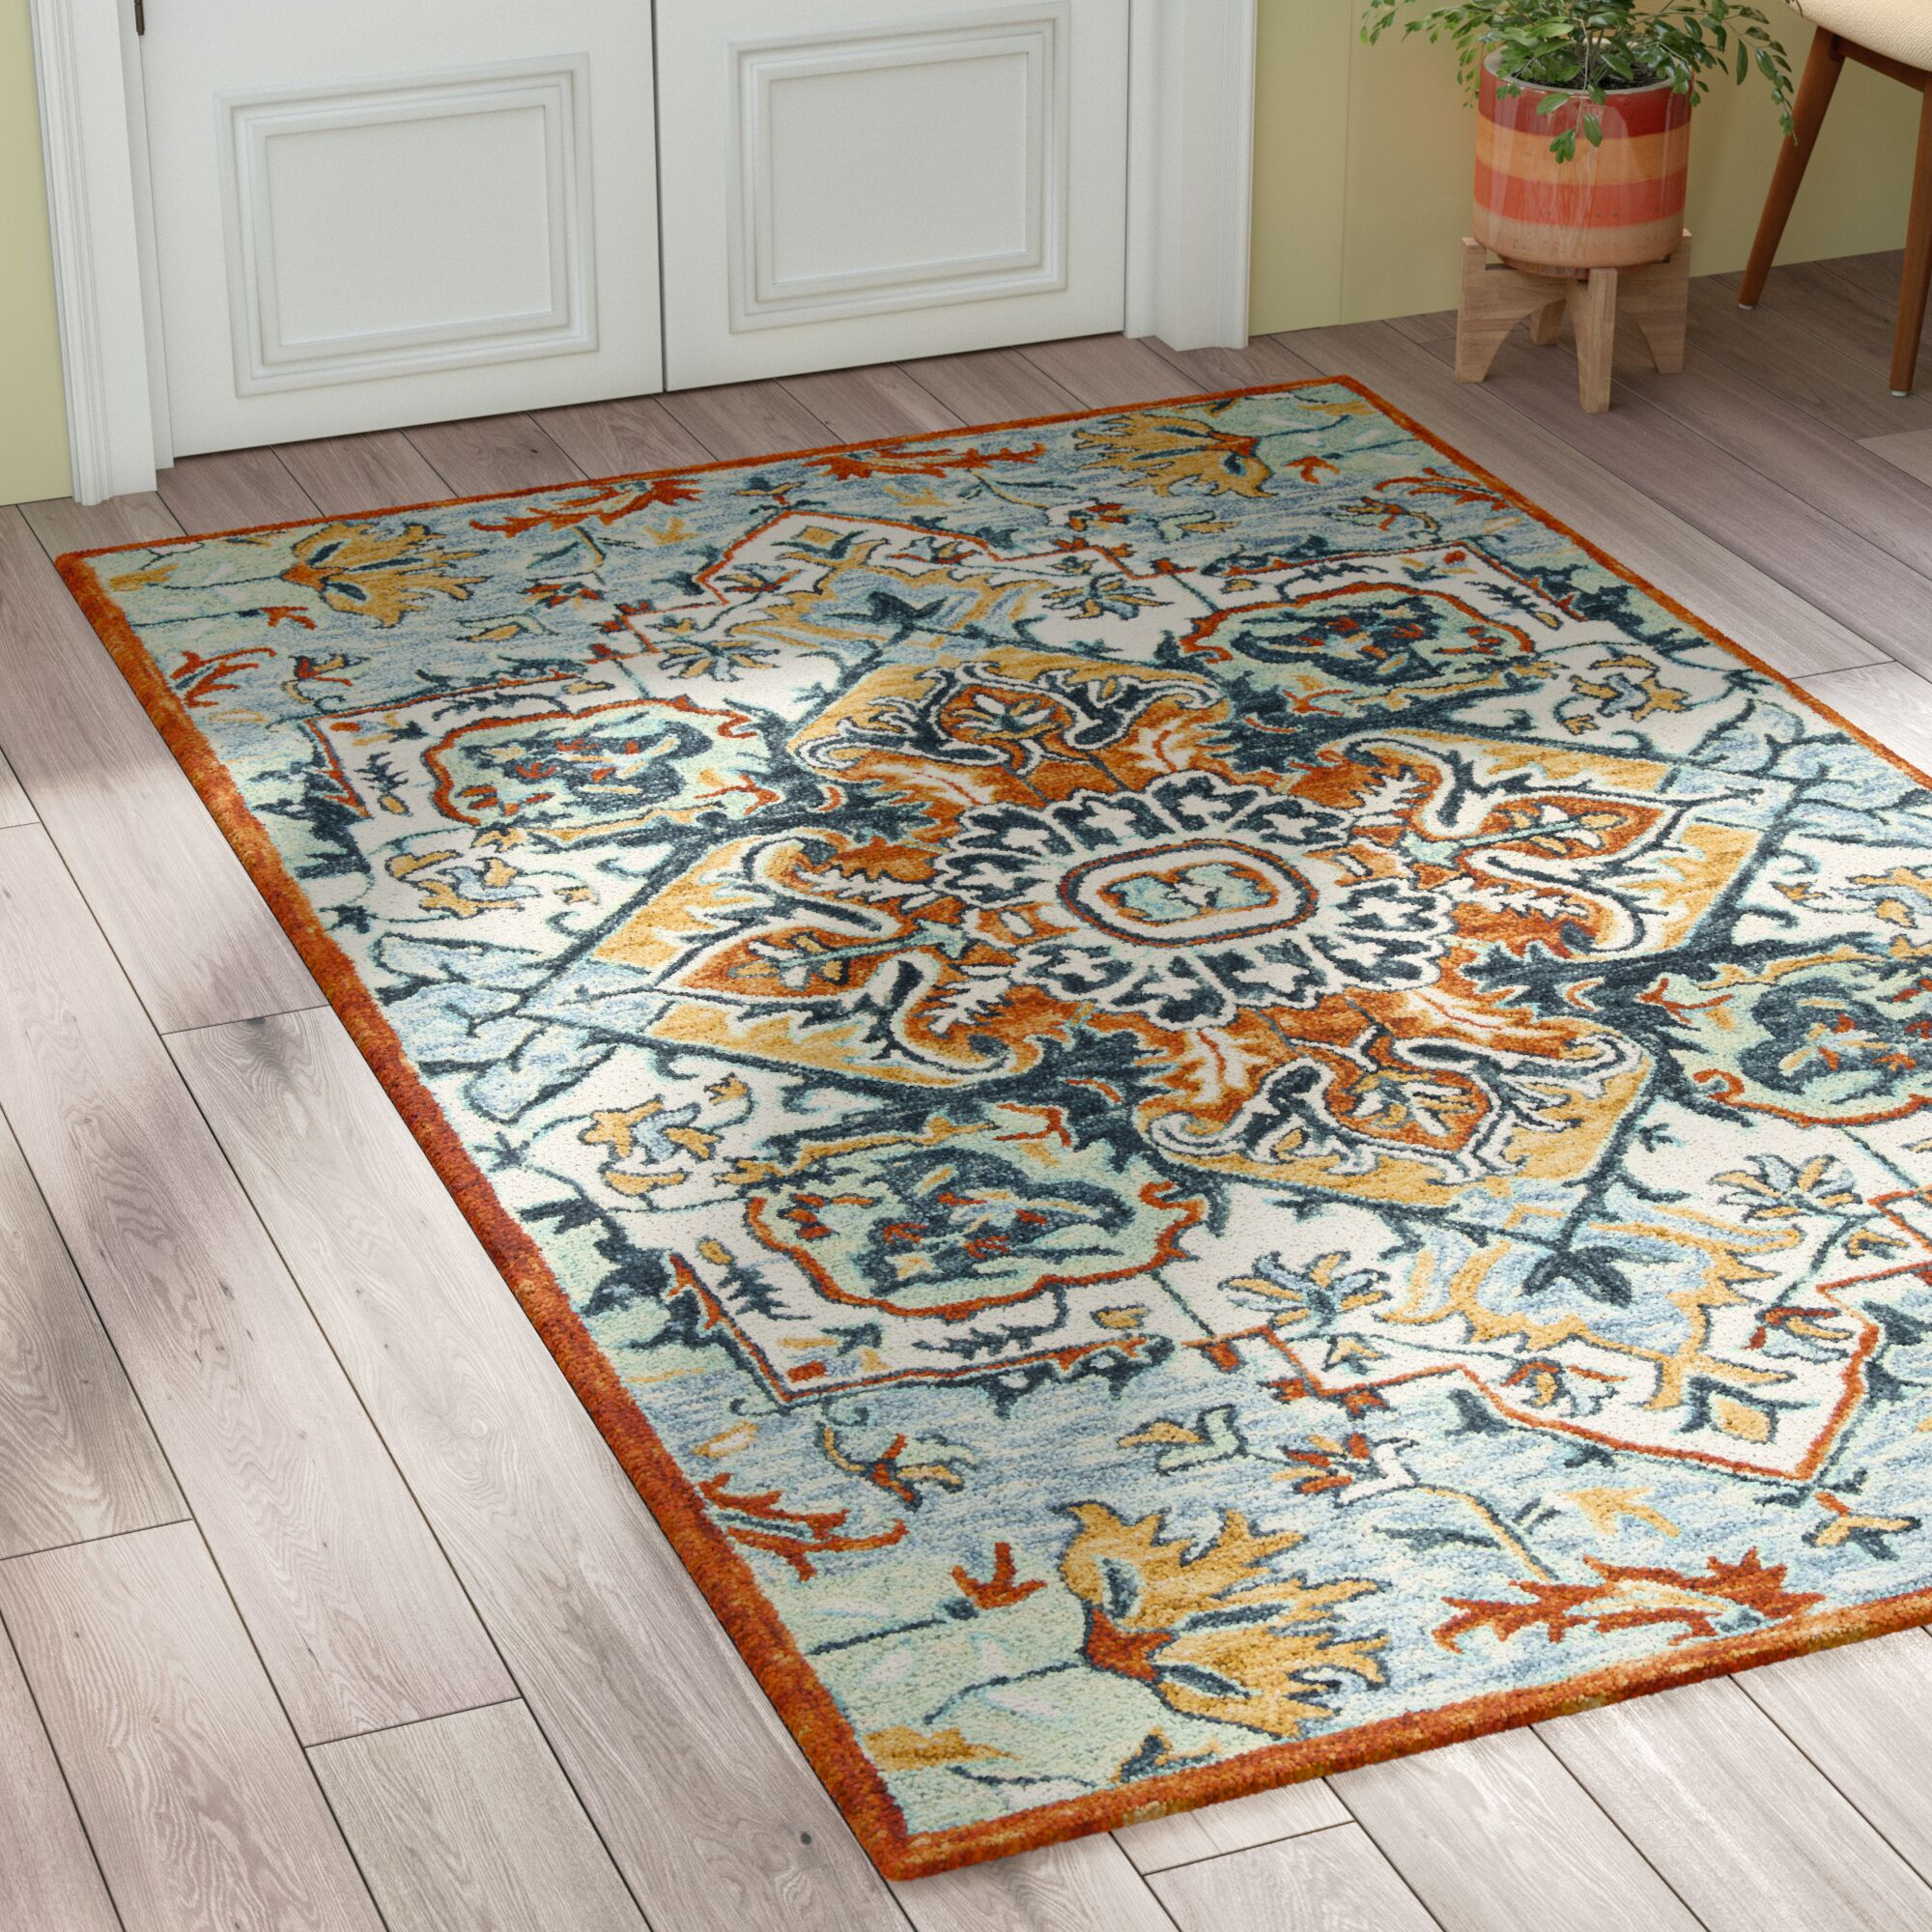 Chancellor Hand-Tufted Wool Blue/Rust Area Rug Rug Size: Rectangle 3' x 5'